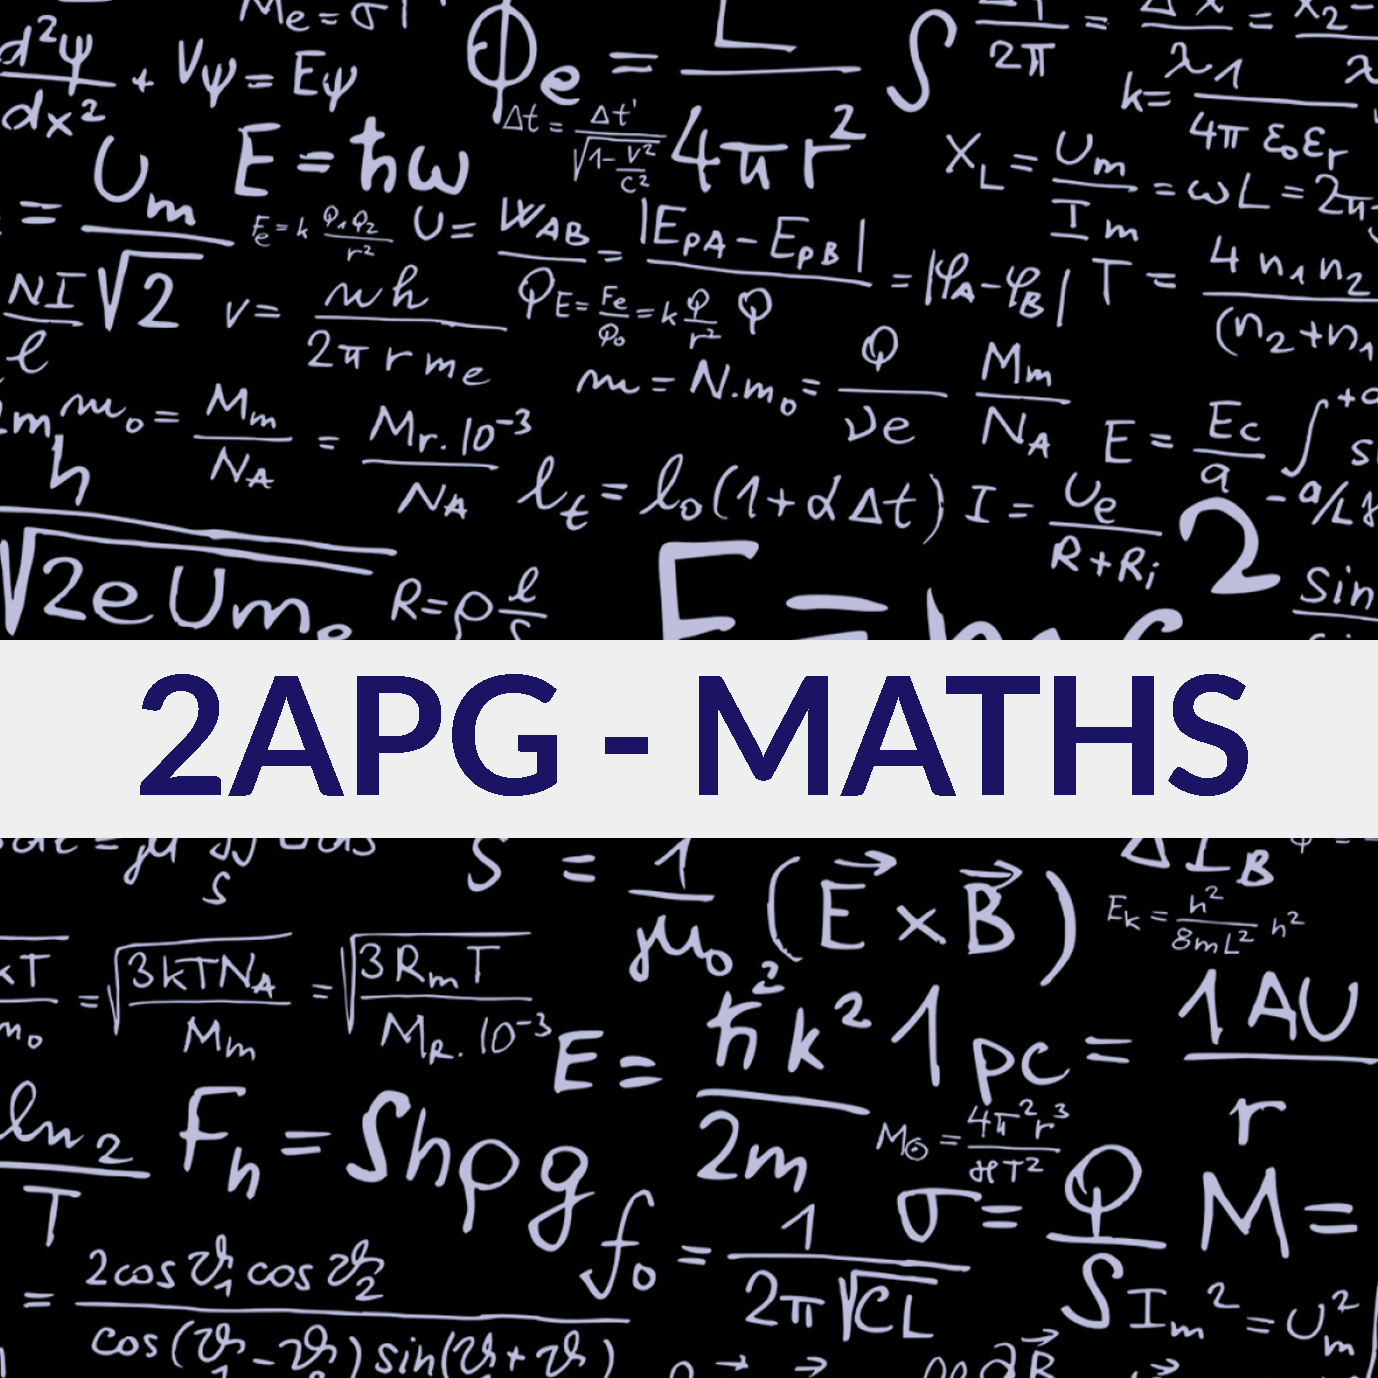 2APG-MATHS course image